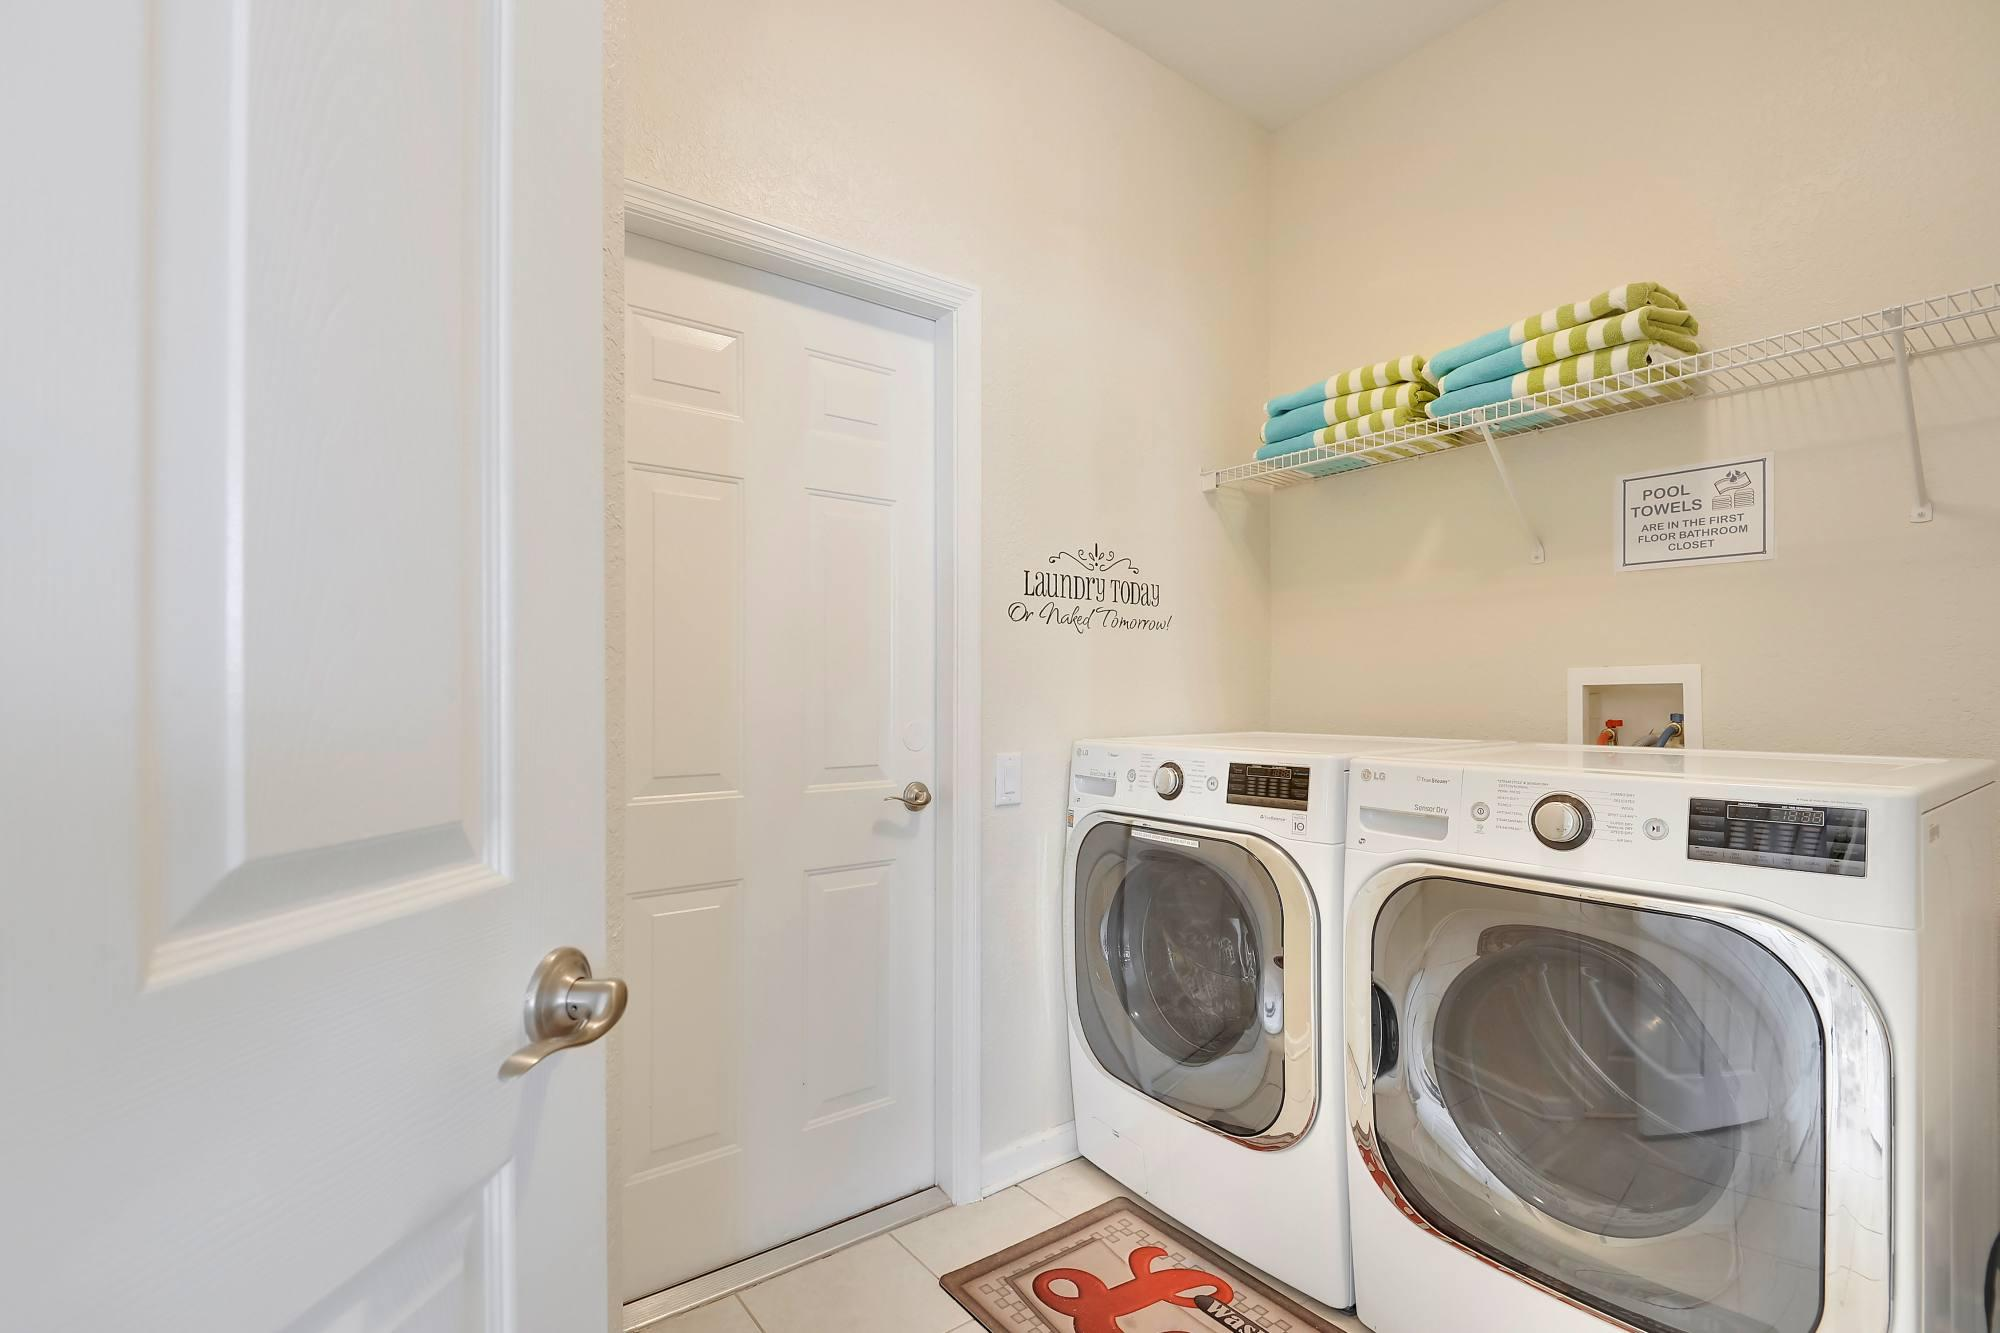 The laundry room with extra large washer and dryer